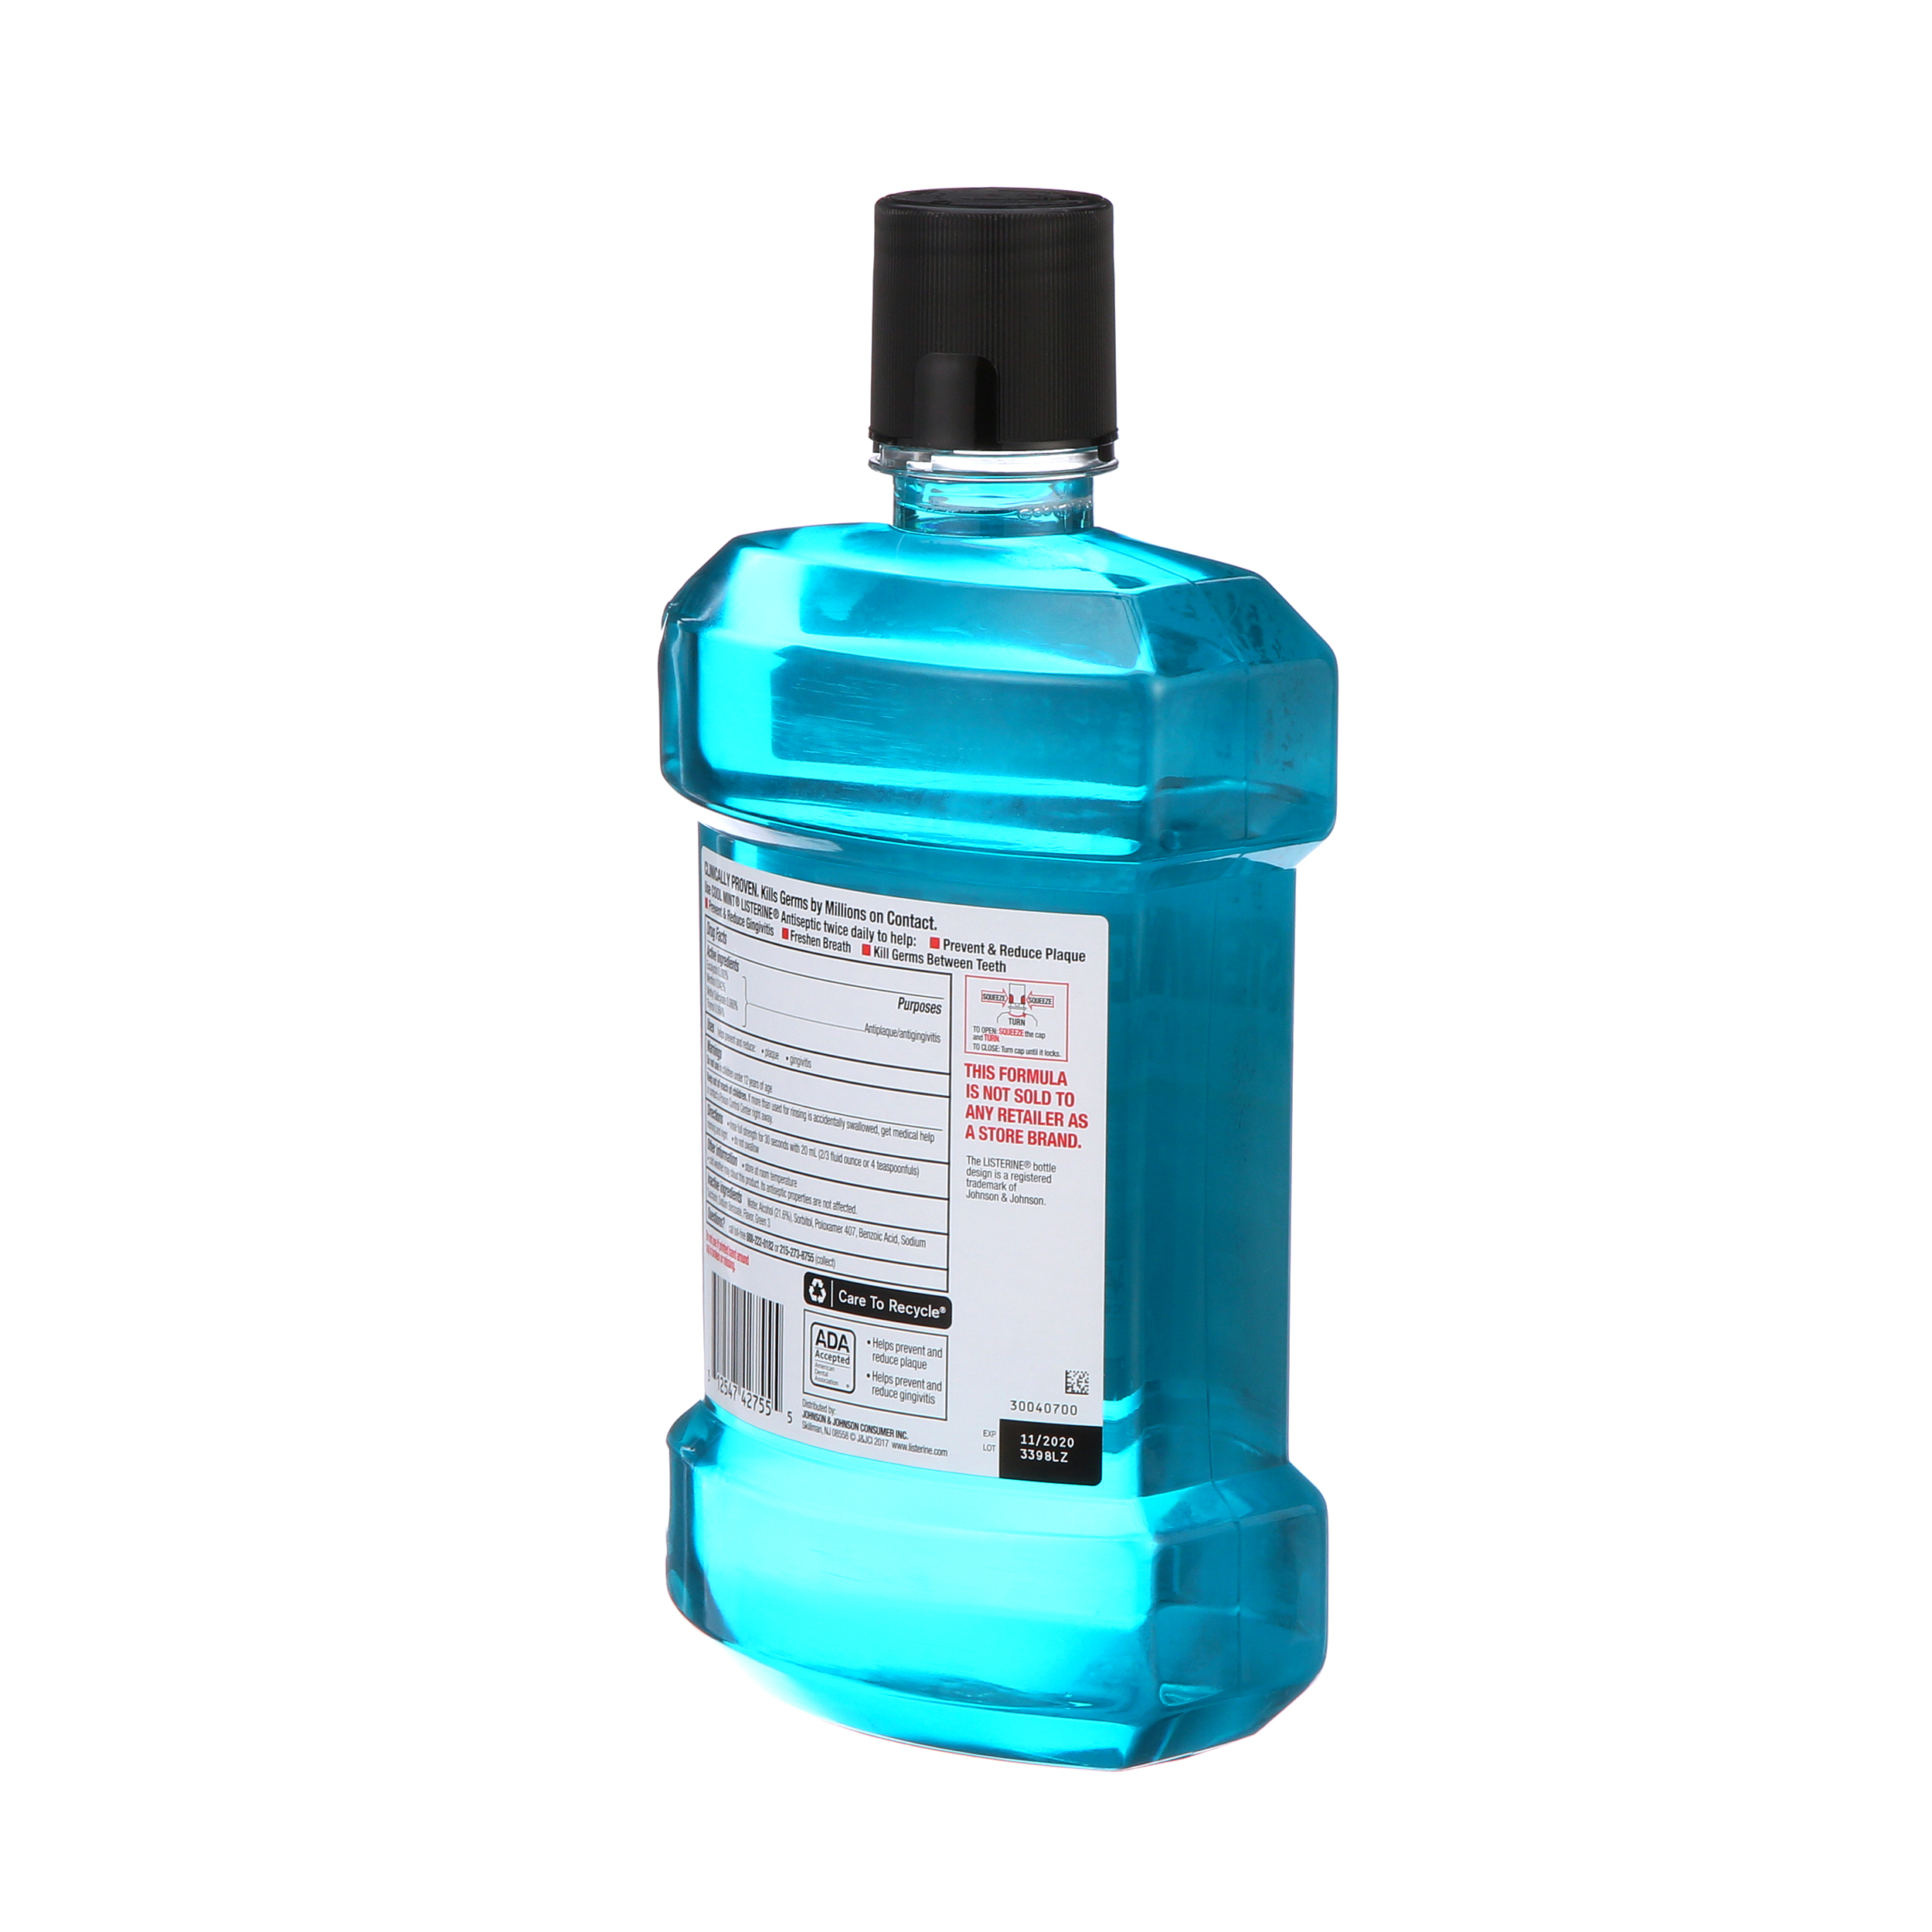 3c01e1ba99c7 Listerine Cool Mint Antiseptic Mouthwash for Bad Breath, 1.5 L ...